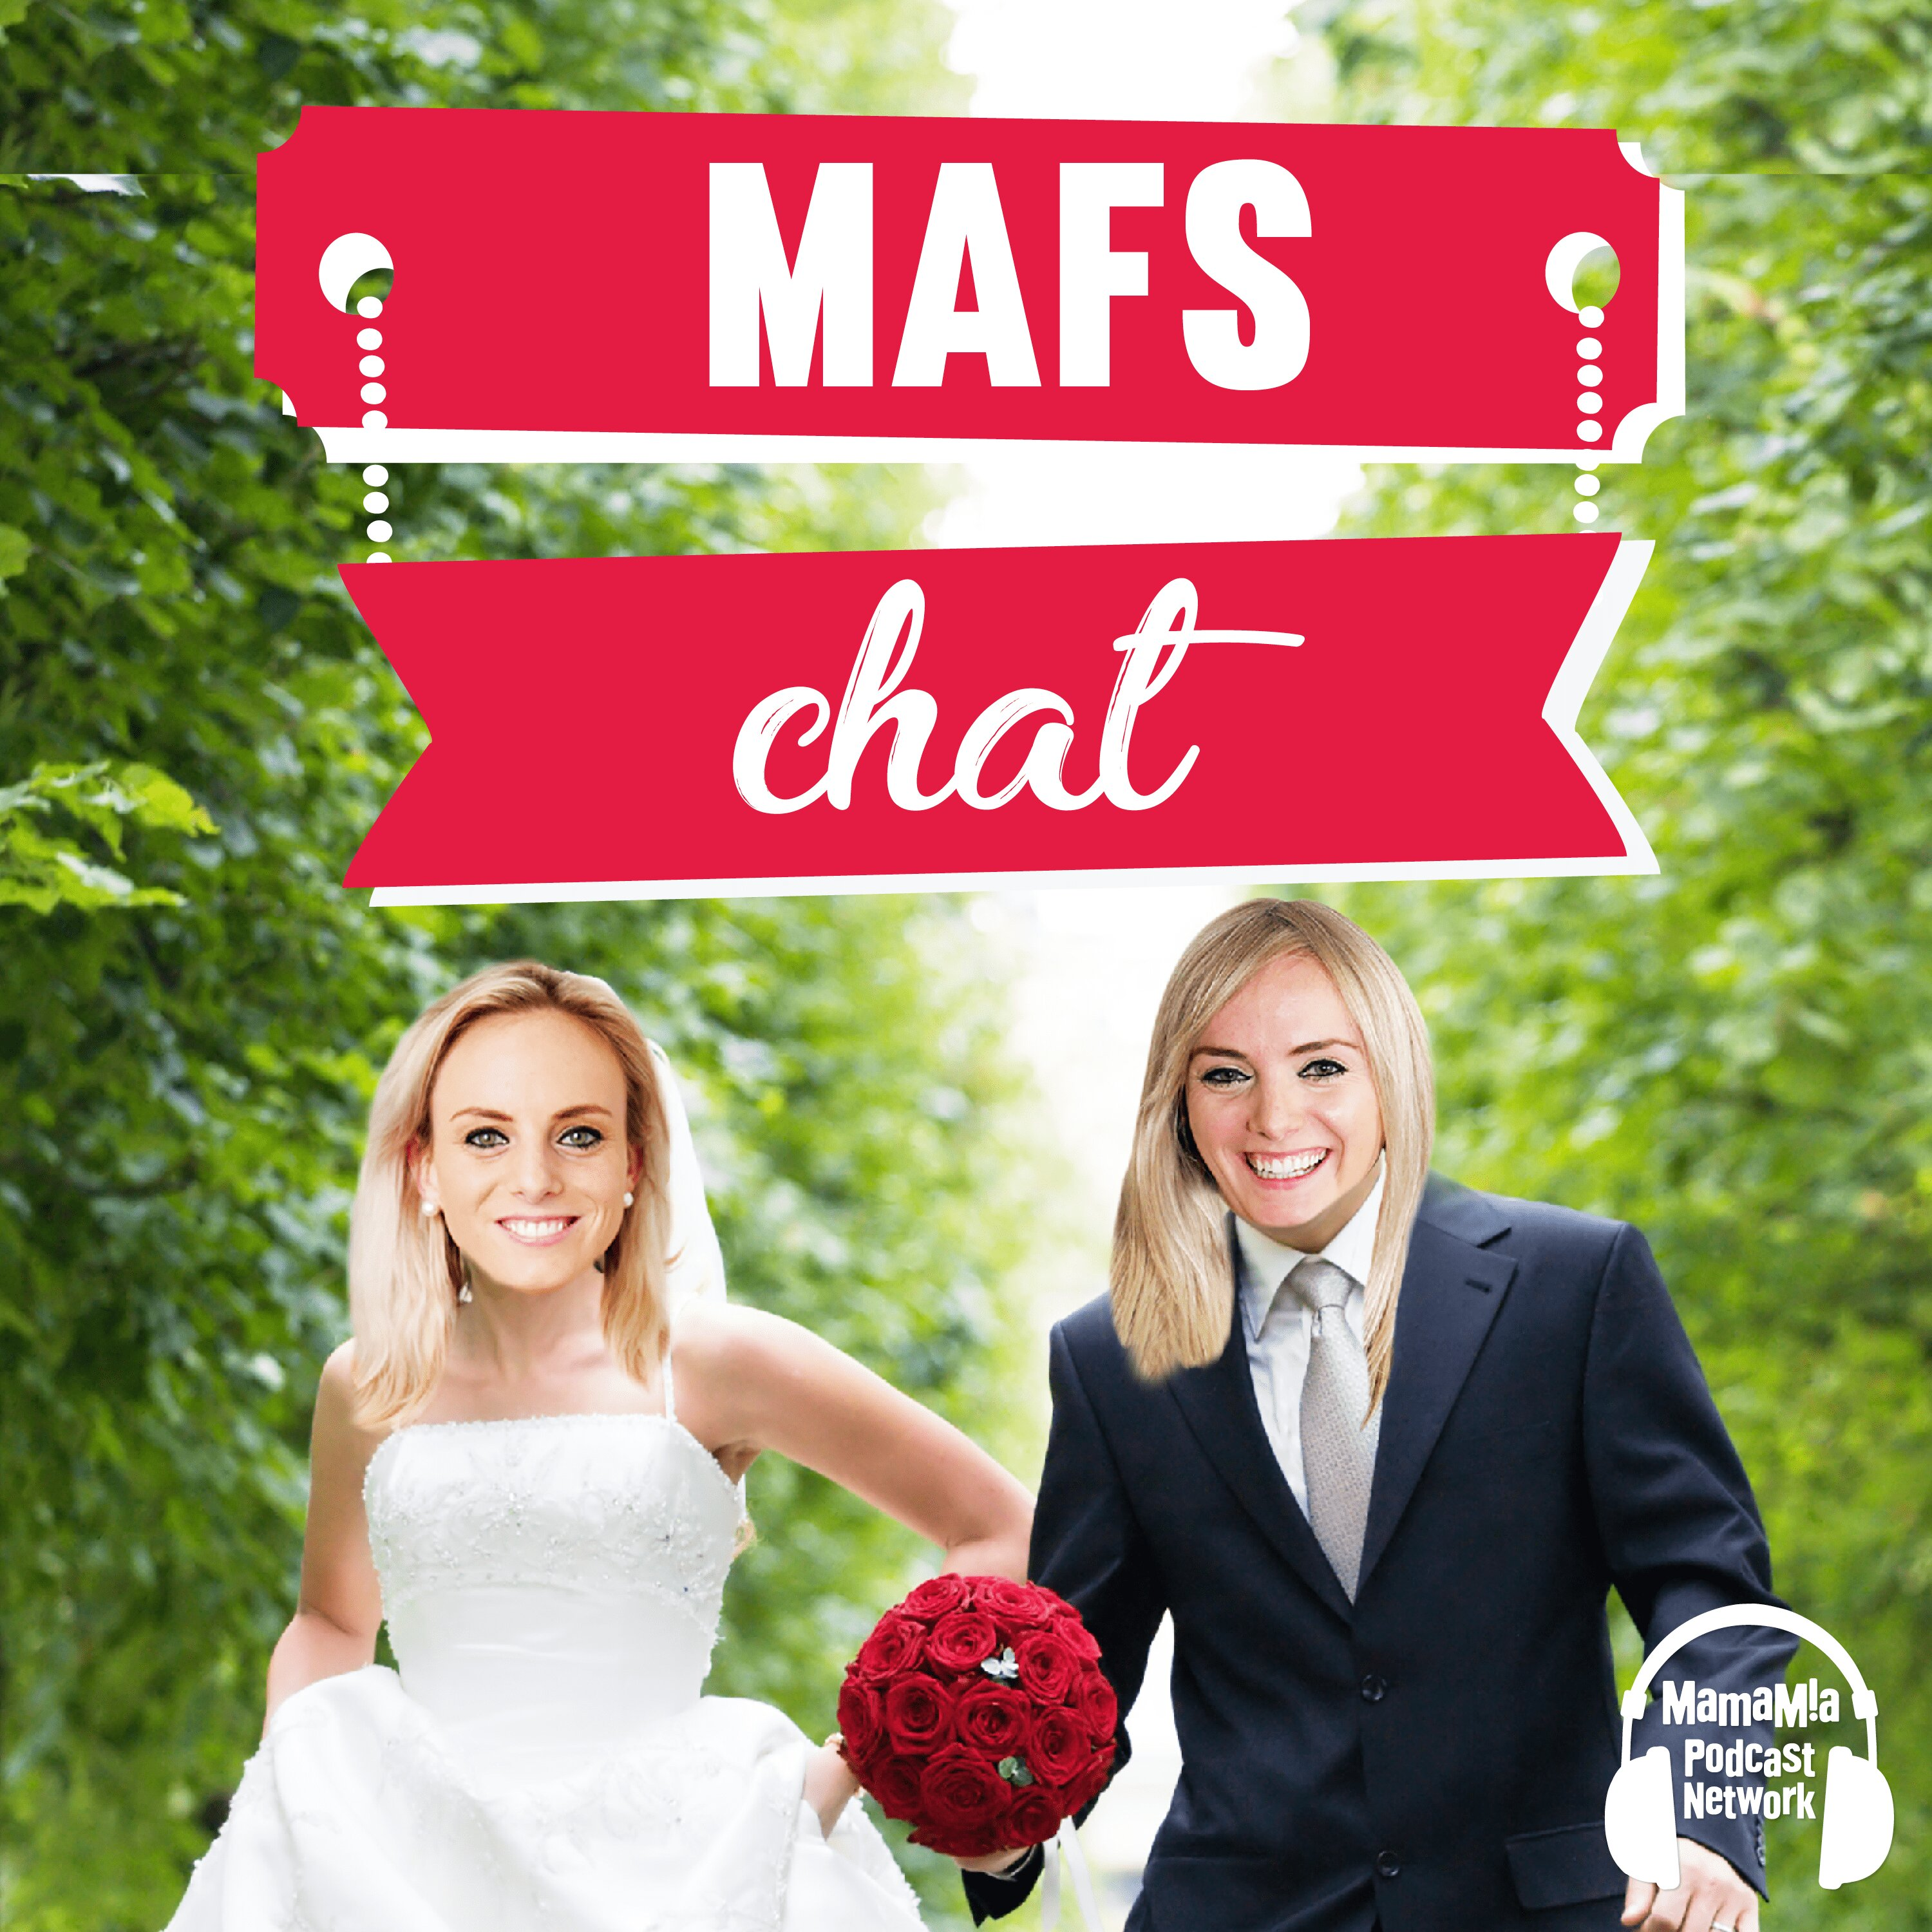 MAFS Chat: The Moment Billy Broke